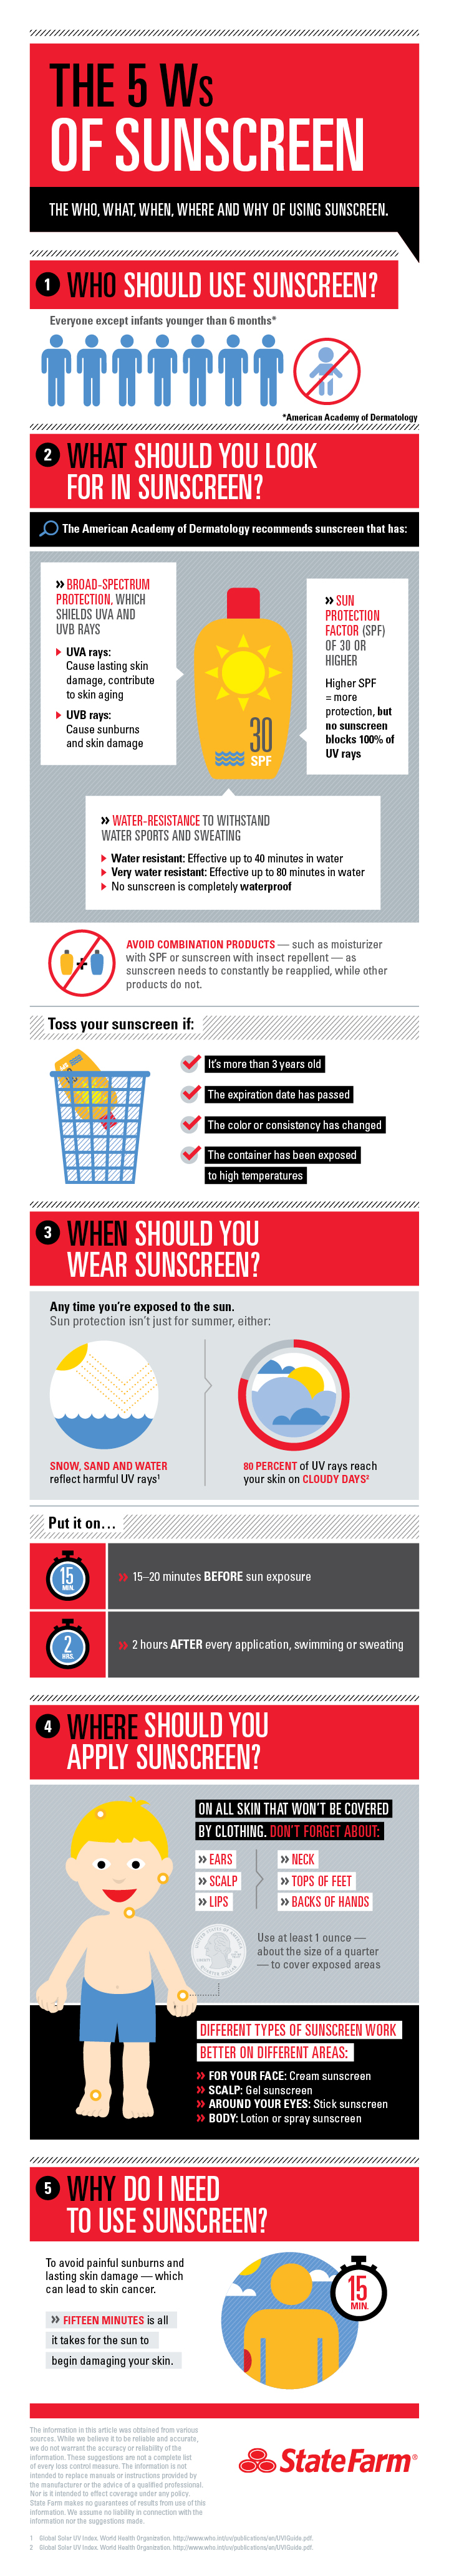 5-ws-of-sunscreen